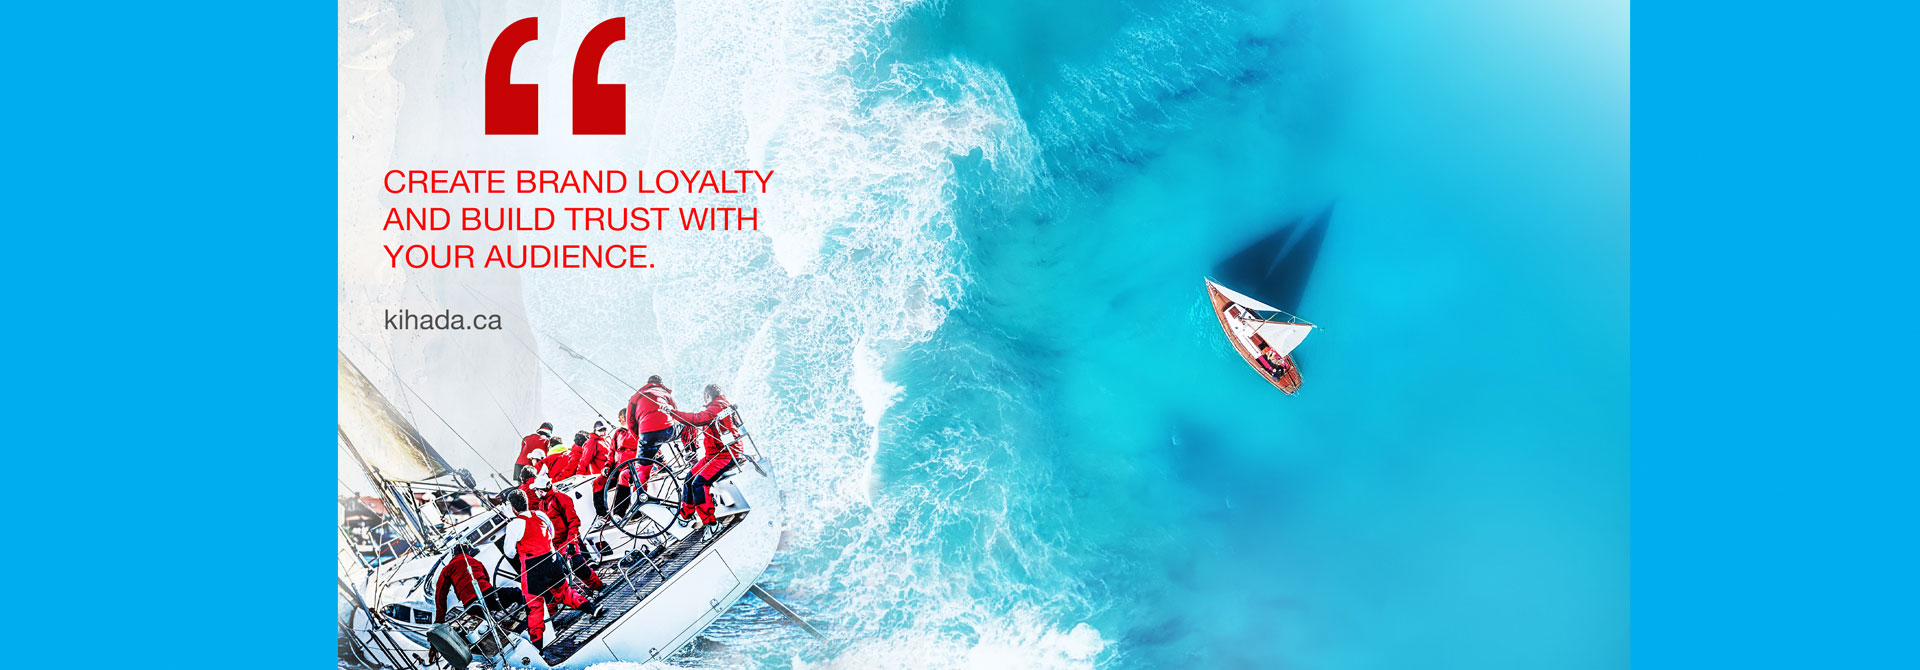 Creates Brand Loyalty & builds trust with your-audience